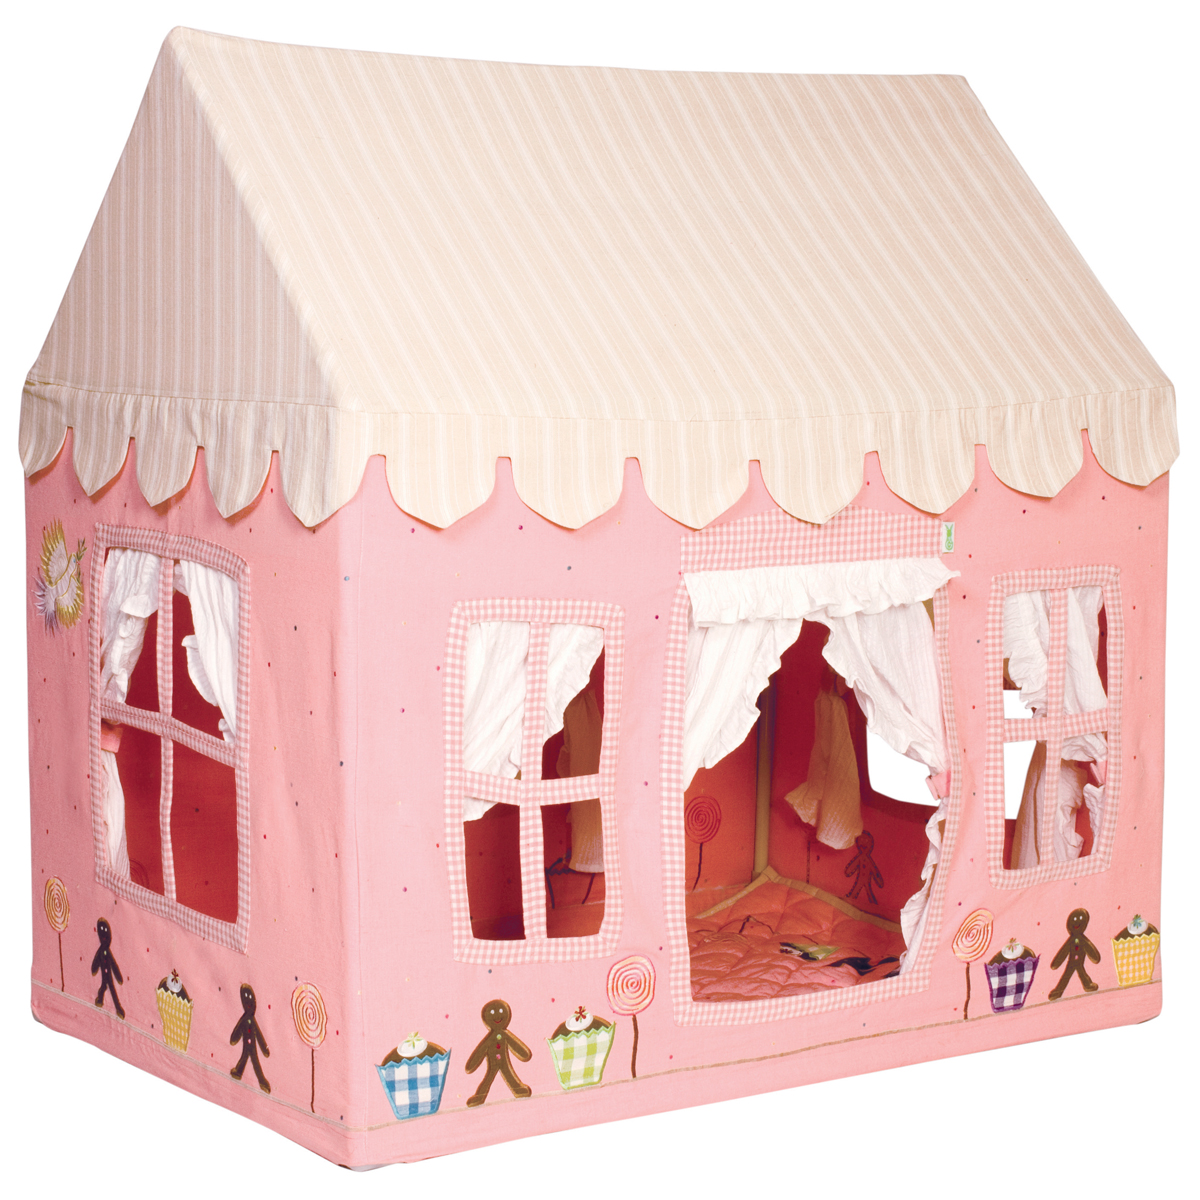 gingerbread cottage playhouse - little goose toys